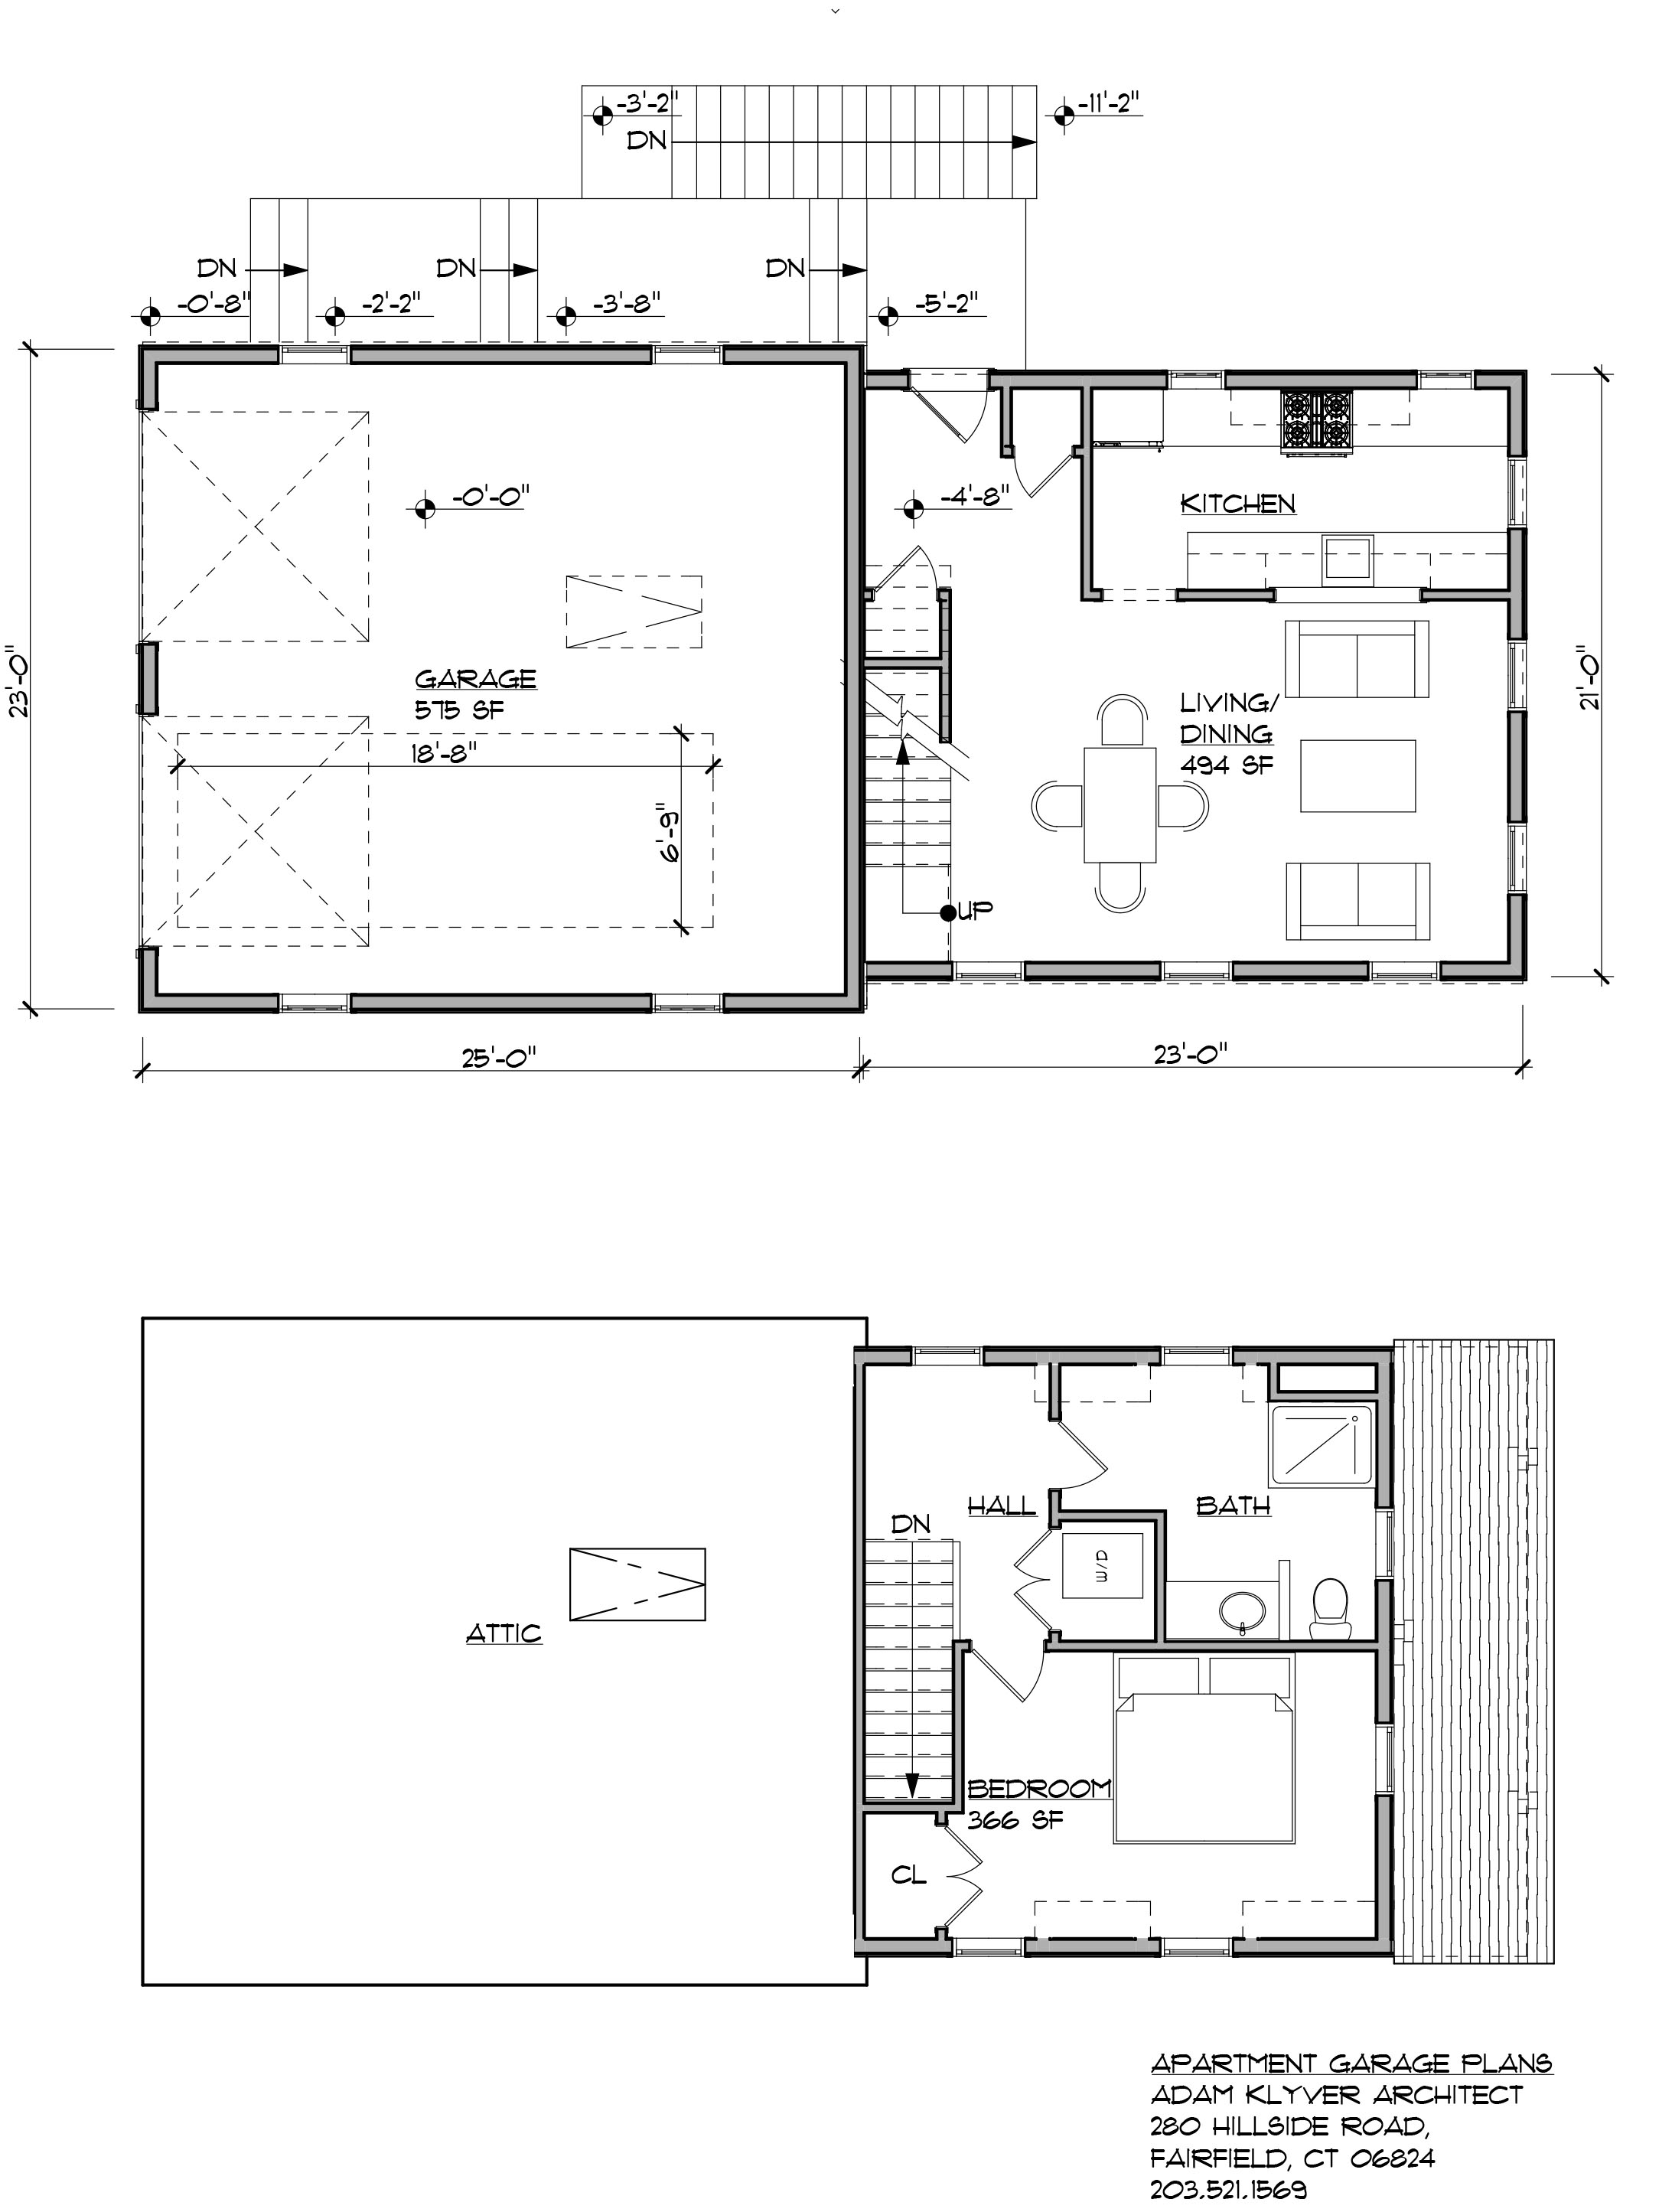 A-101 FIRST FLOOR PLAN